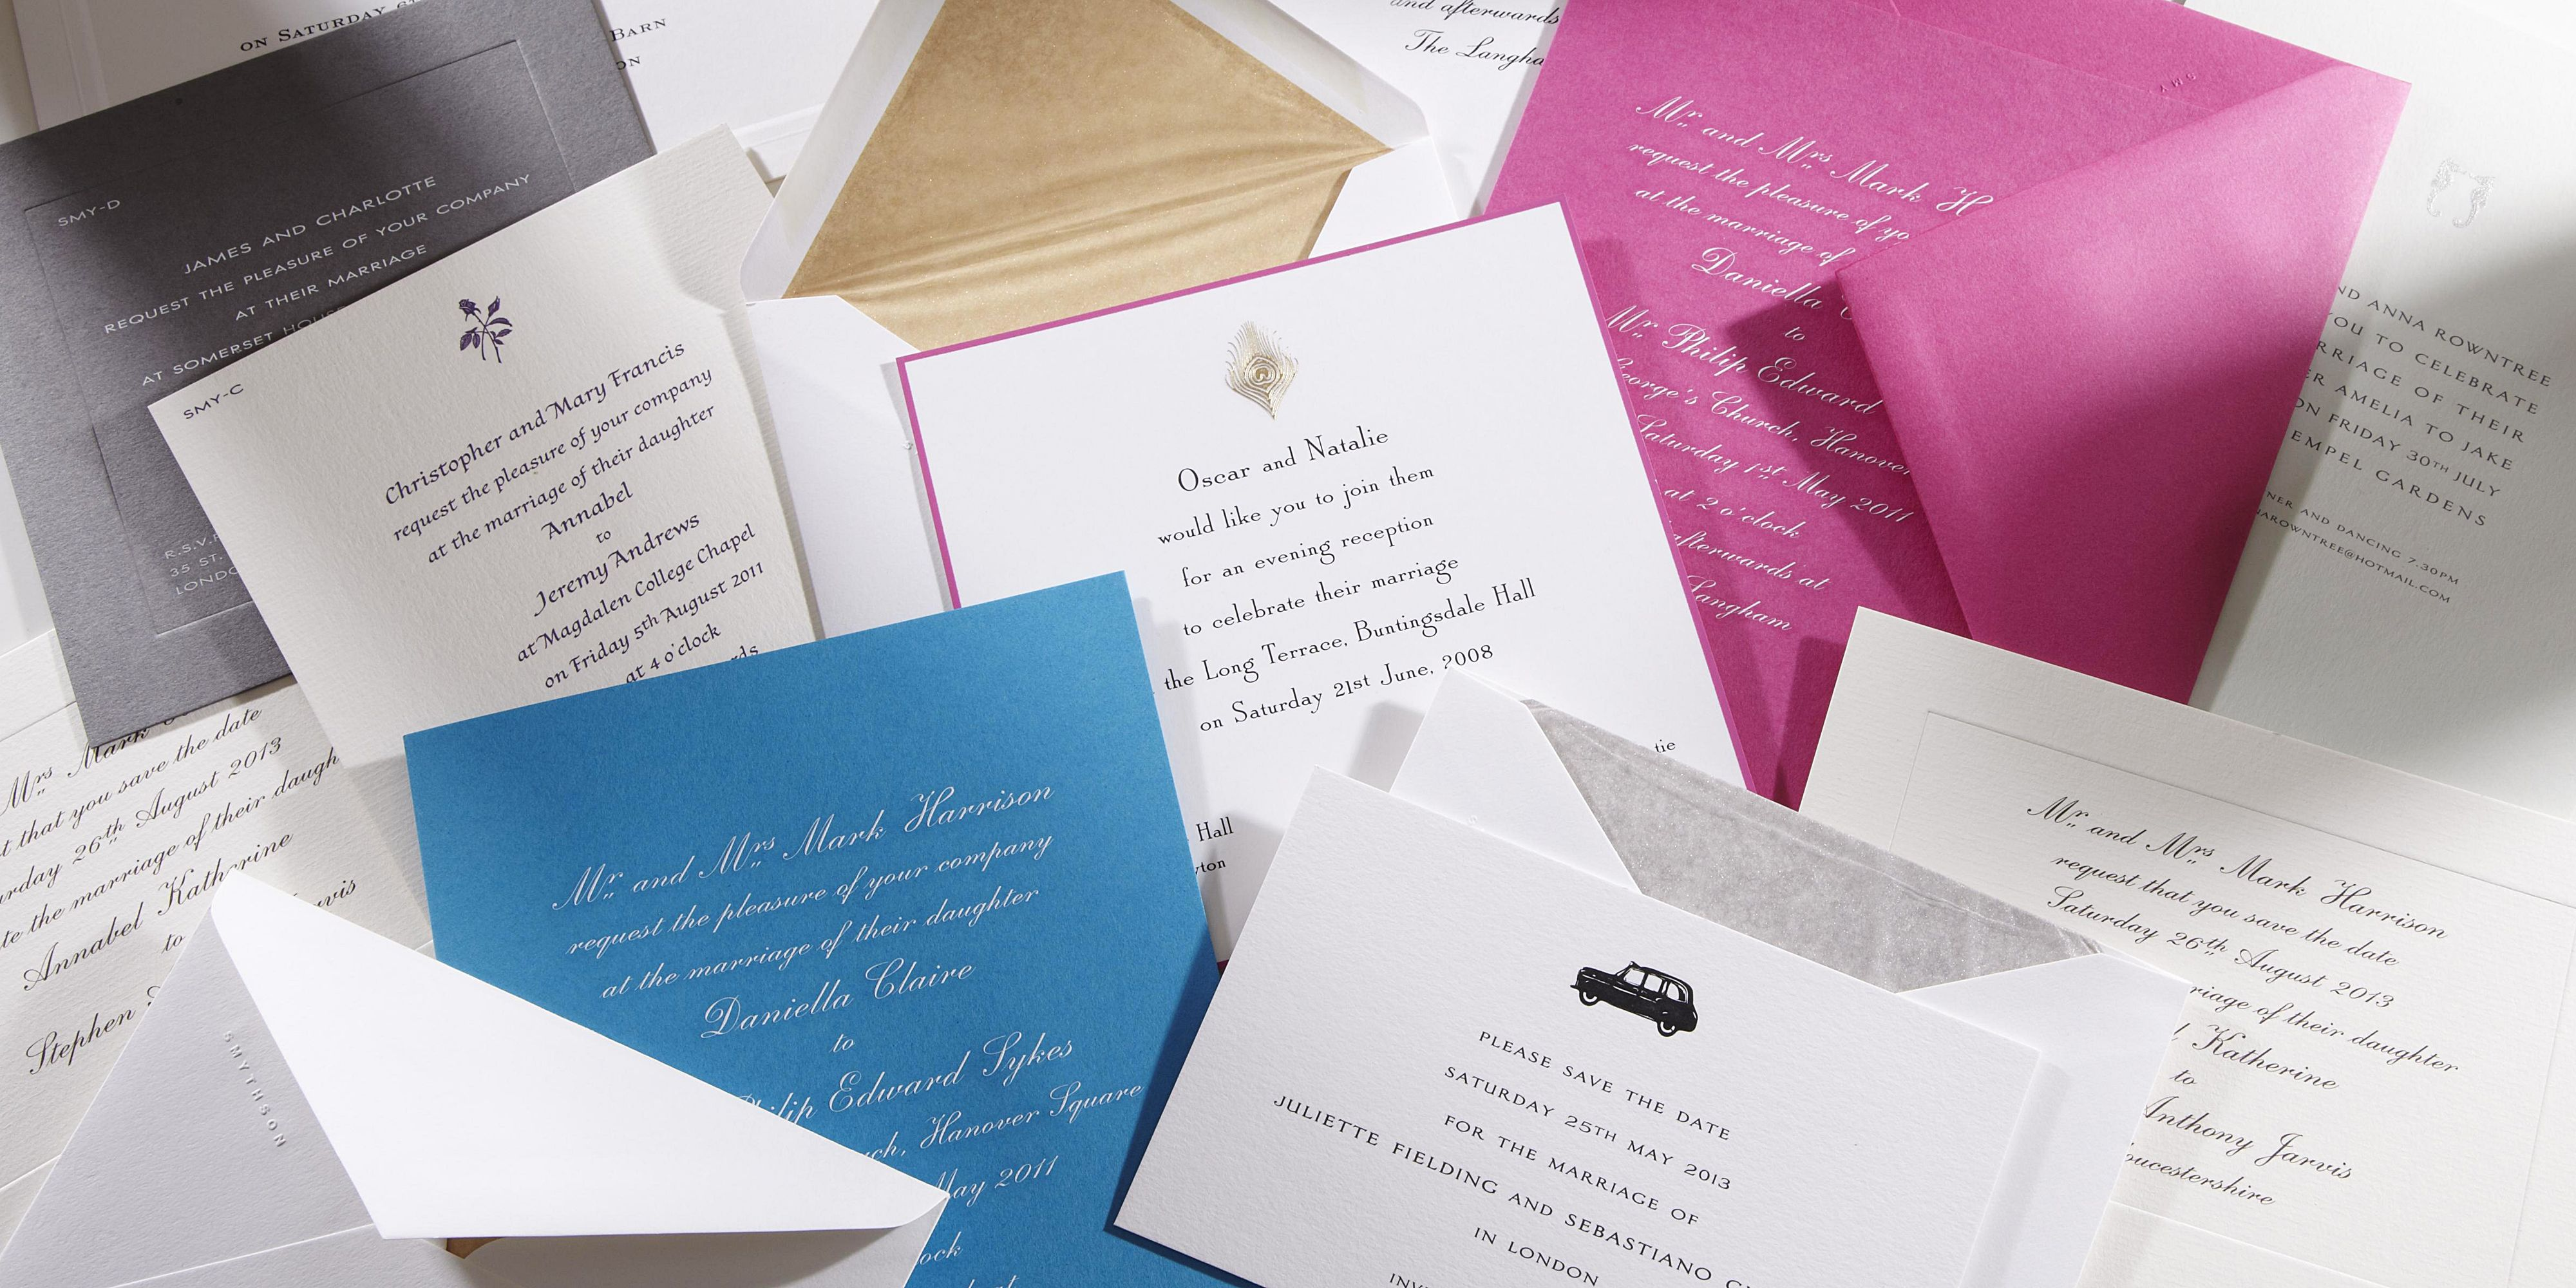 Smythson Wedding Invitation Ido